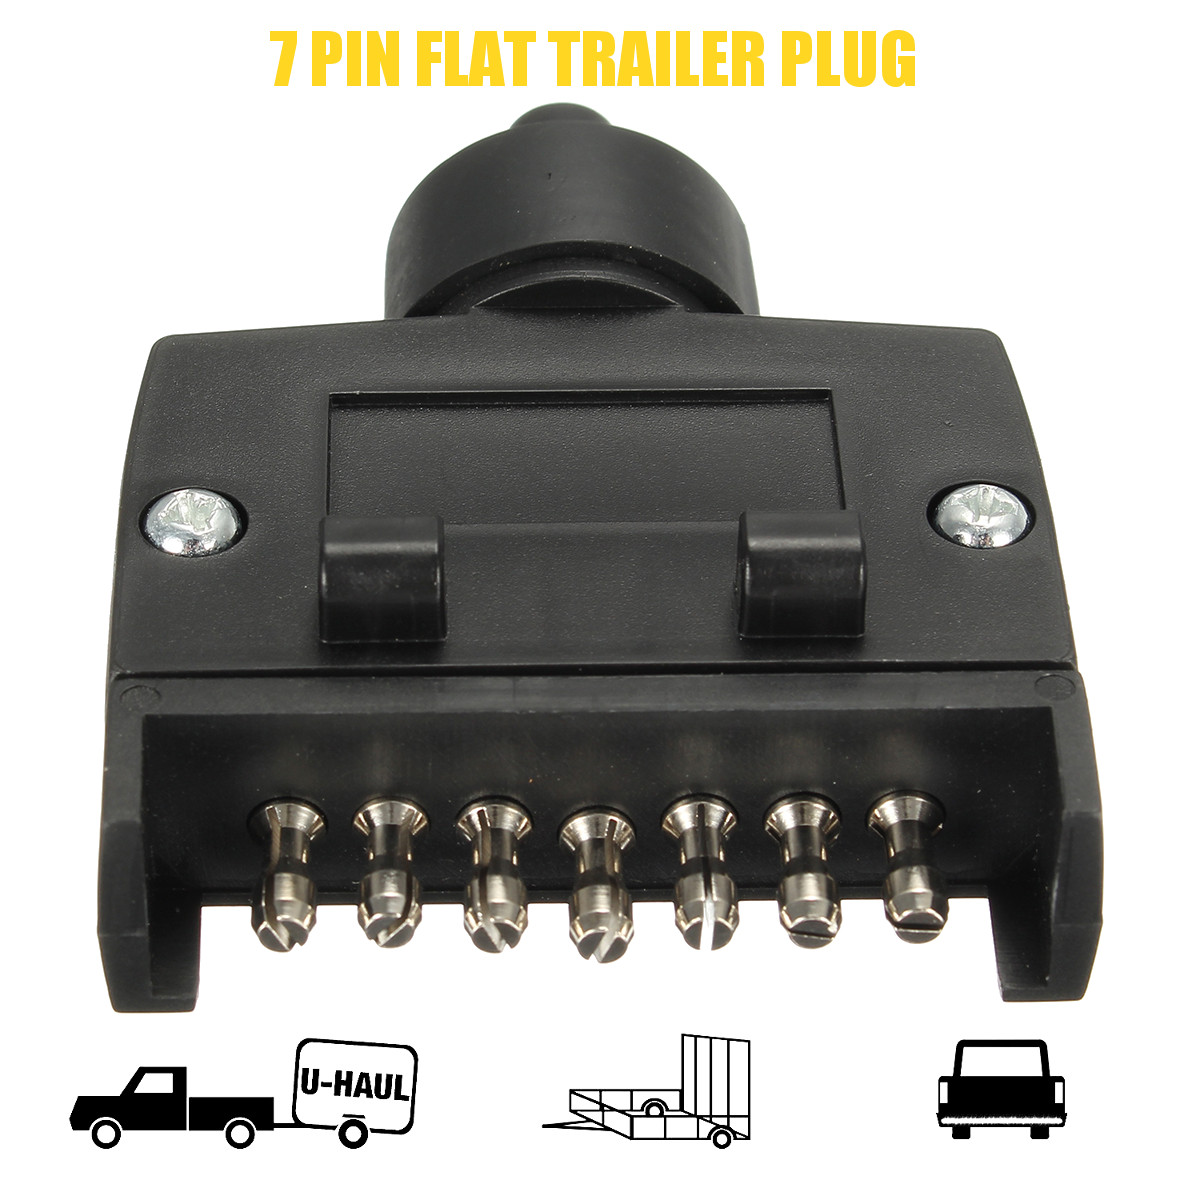 wiring diagram for 7 pin flat trailer connector electronic distributor male plug socket